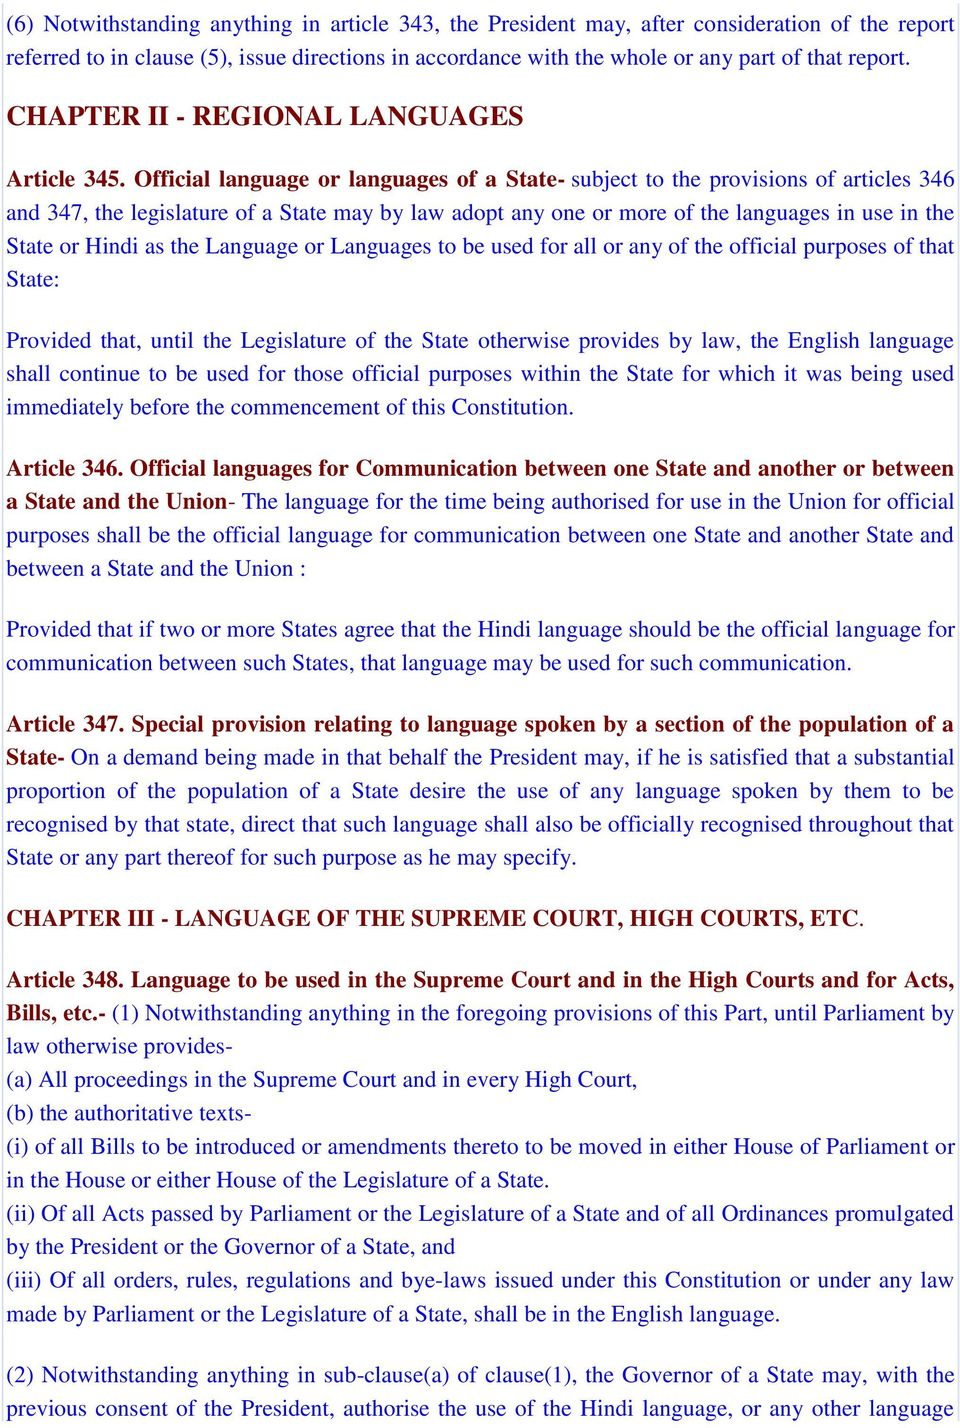 Official language or languages of a State- subject to the provisions of articles 346 and 347, the legislature of a State may by law adopt any one or more of the languages in use in the State or Hindi